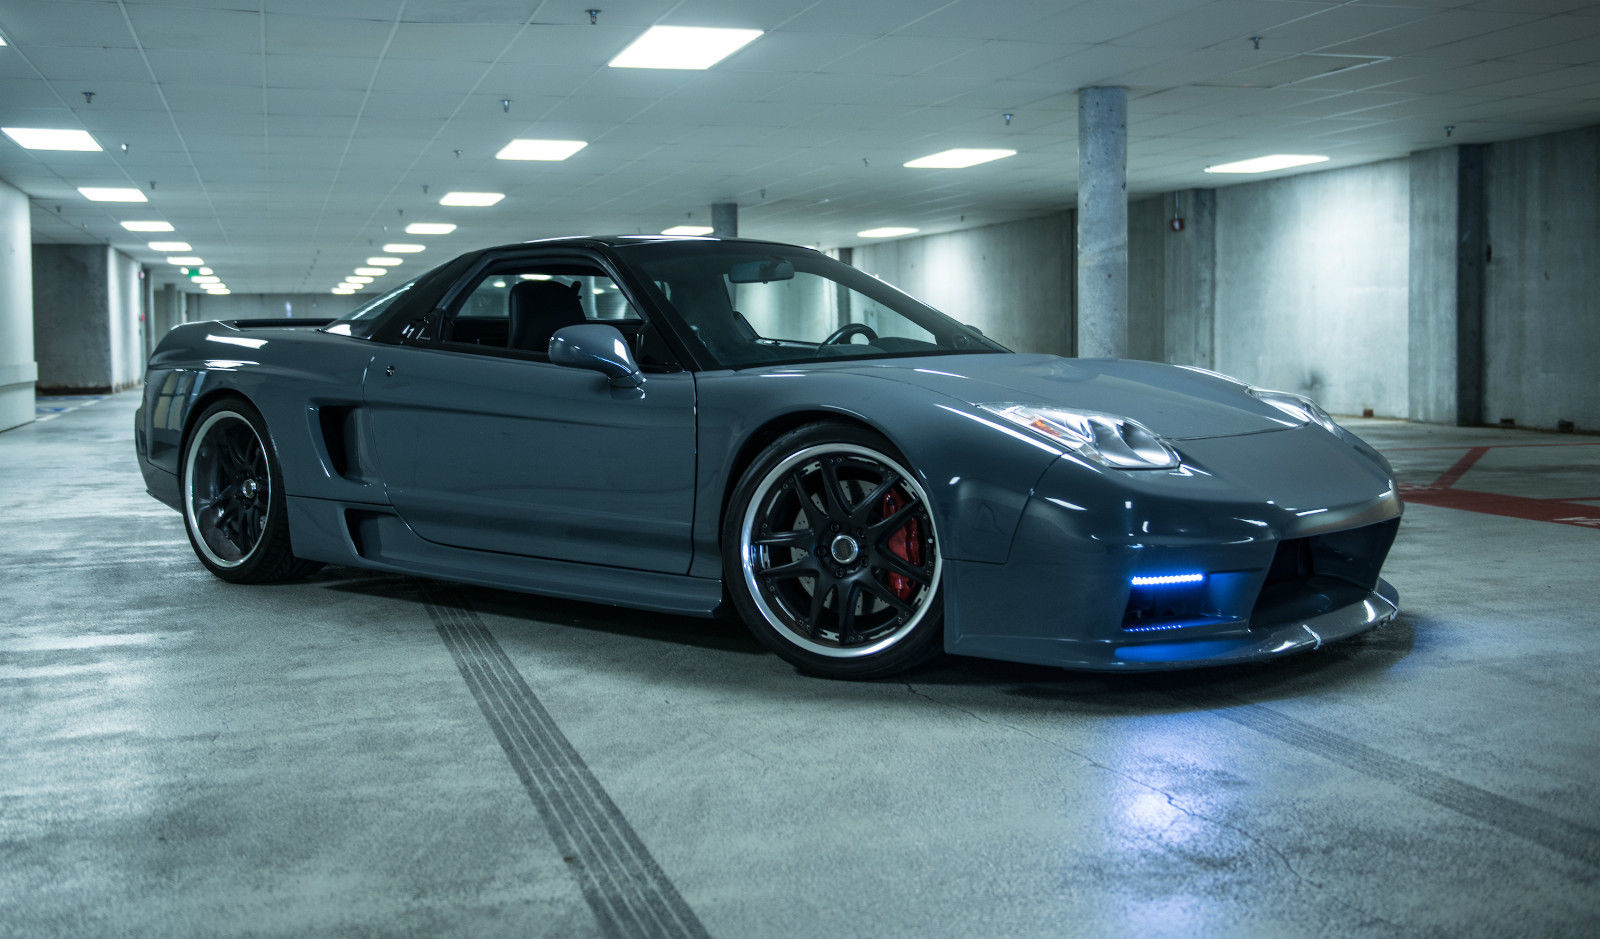 Turbo Widebody NSX. LOW Miles on Mods! Show Stopping, 1 of a Kind.  Immaculate.